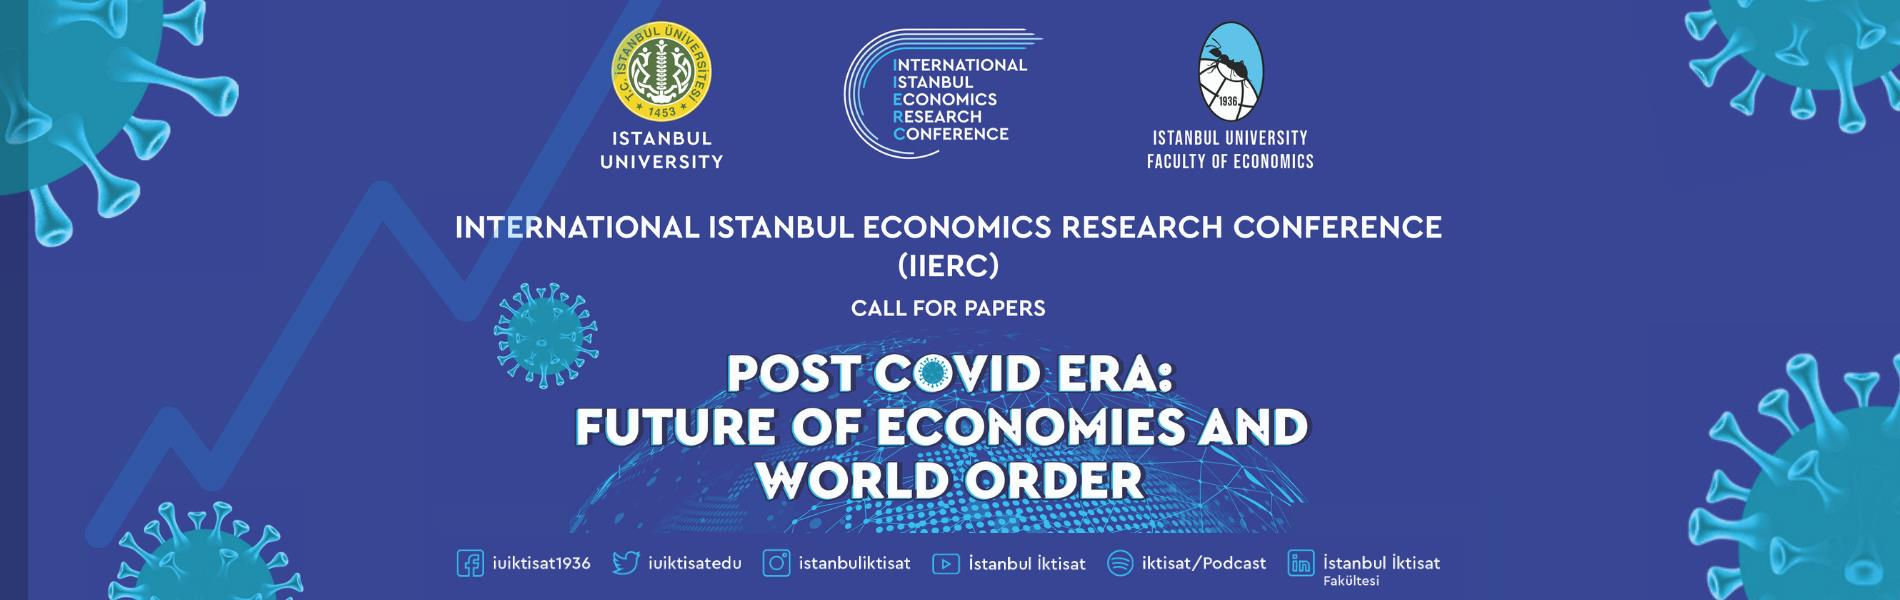 post-covid-future-impact-and-news-orders